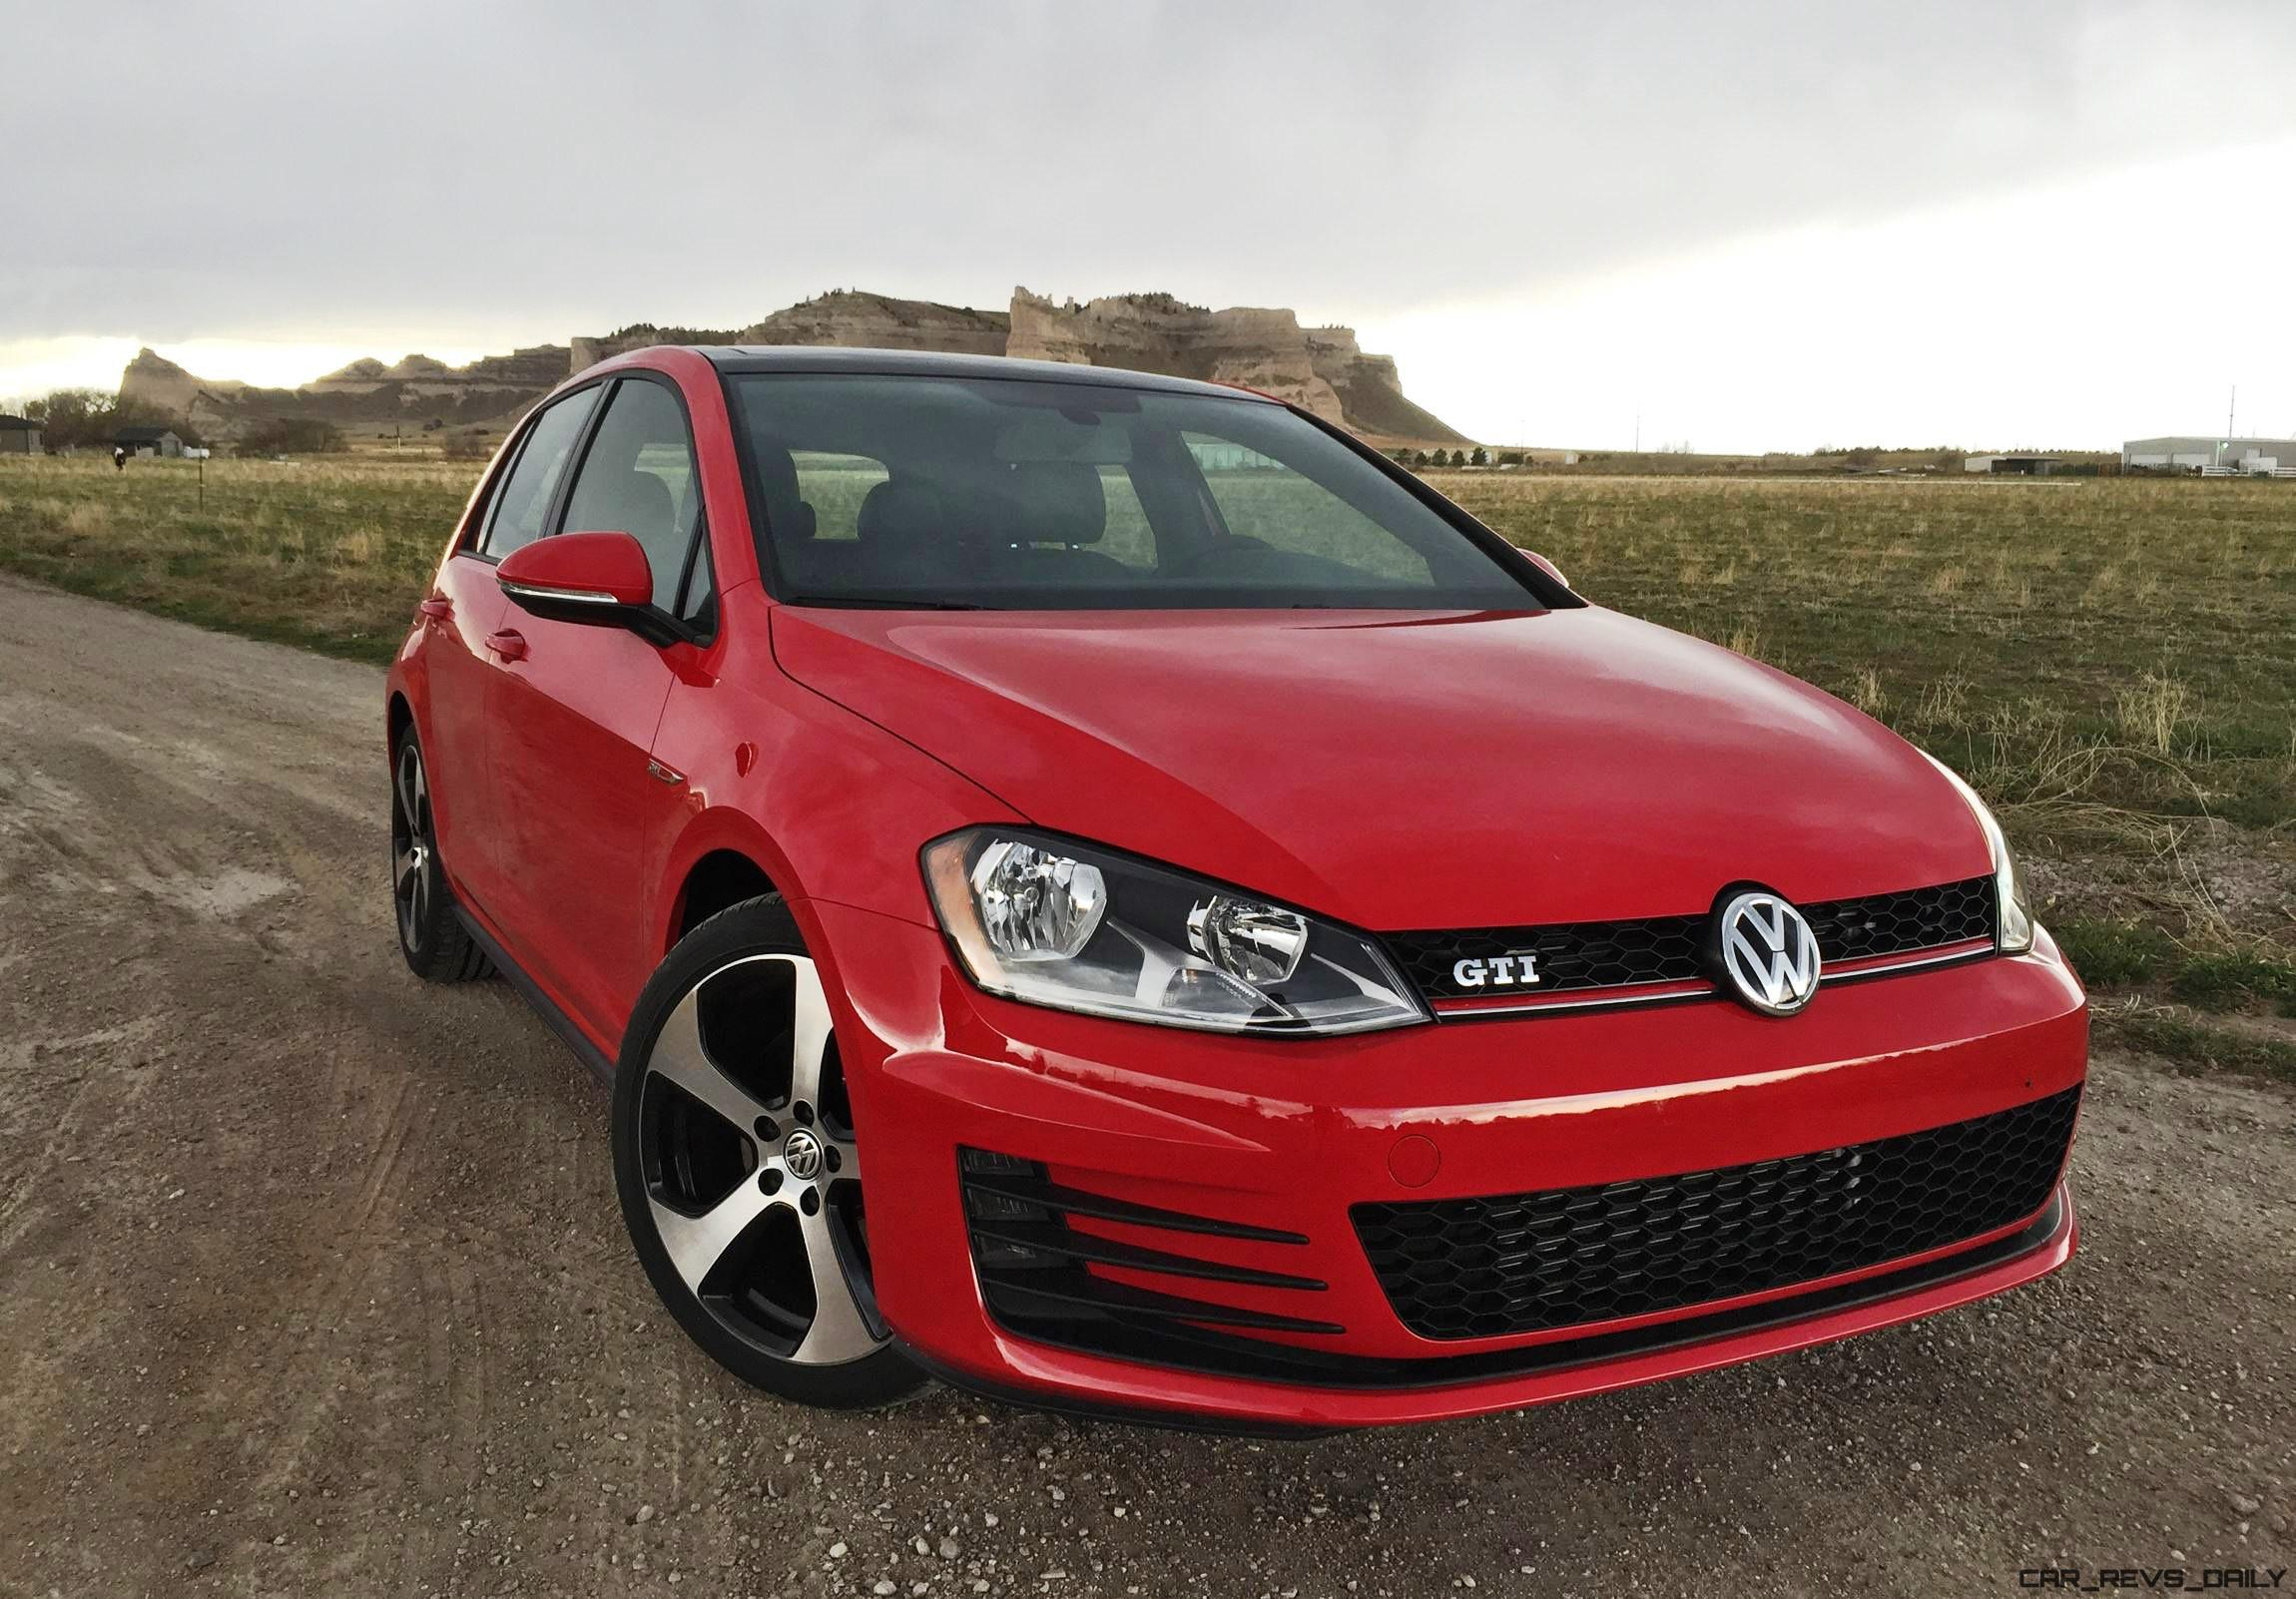 road test review 2016 volkswagen golf gti autobahn 6 speed by tim esterdahl. Black Bedroom Furniture Sets. Home Design Ideas